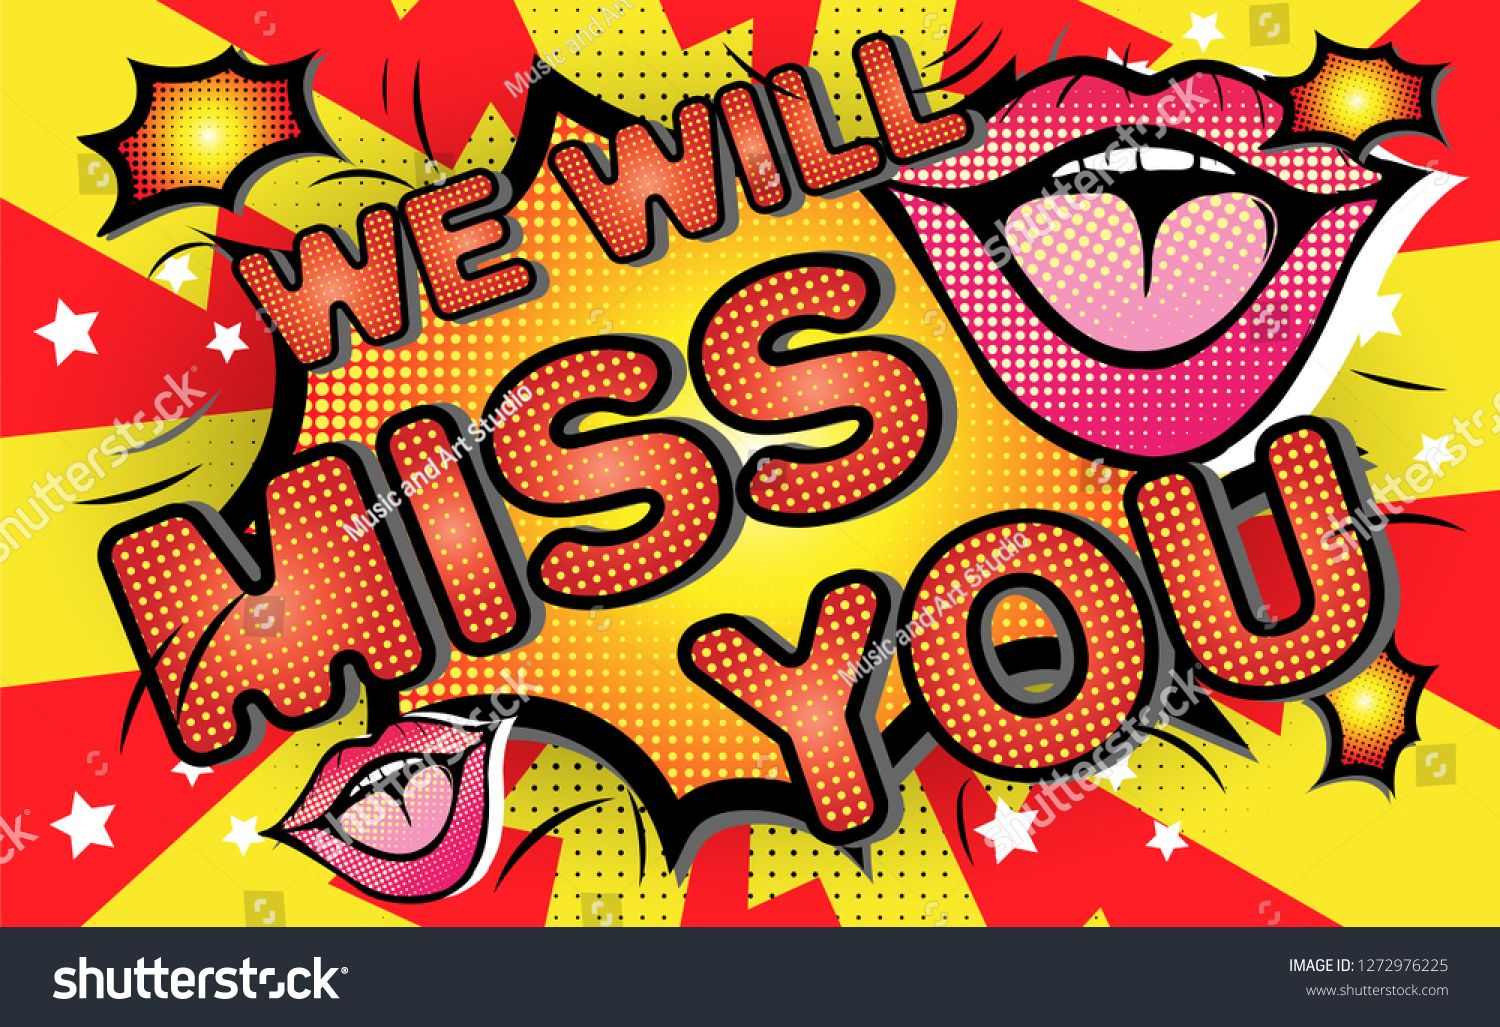 Farewell Party Template We Will Miss You Text Design Pop Art Comic Style Colorful Background For T Shirt Print Ban Pop Art Comic Banner Printing Tshirt Print